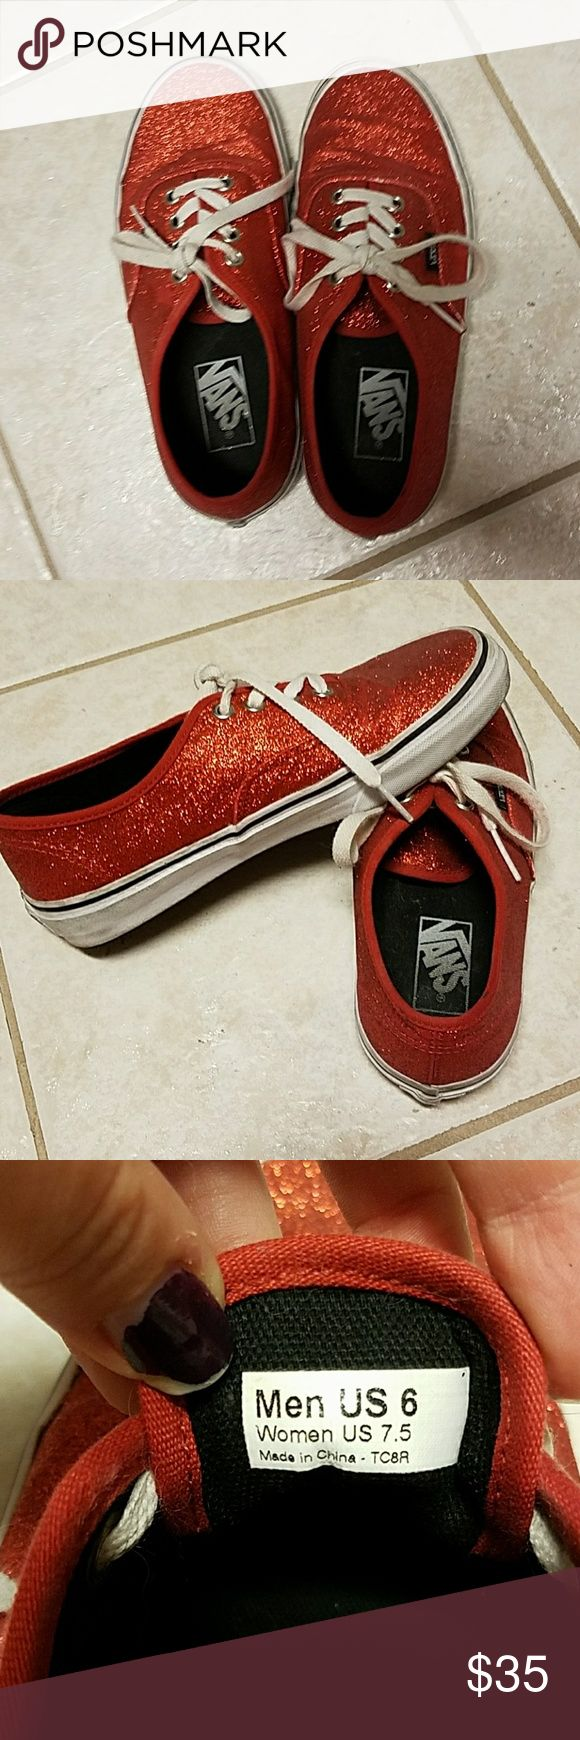 Red Shiny Vans ❤Reduced Price❤ Cute glittery Vans! Still have a lot of life left in them! Vans Shoes Sneakers